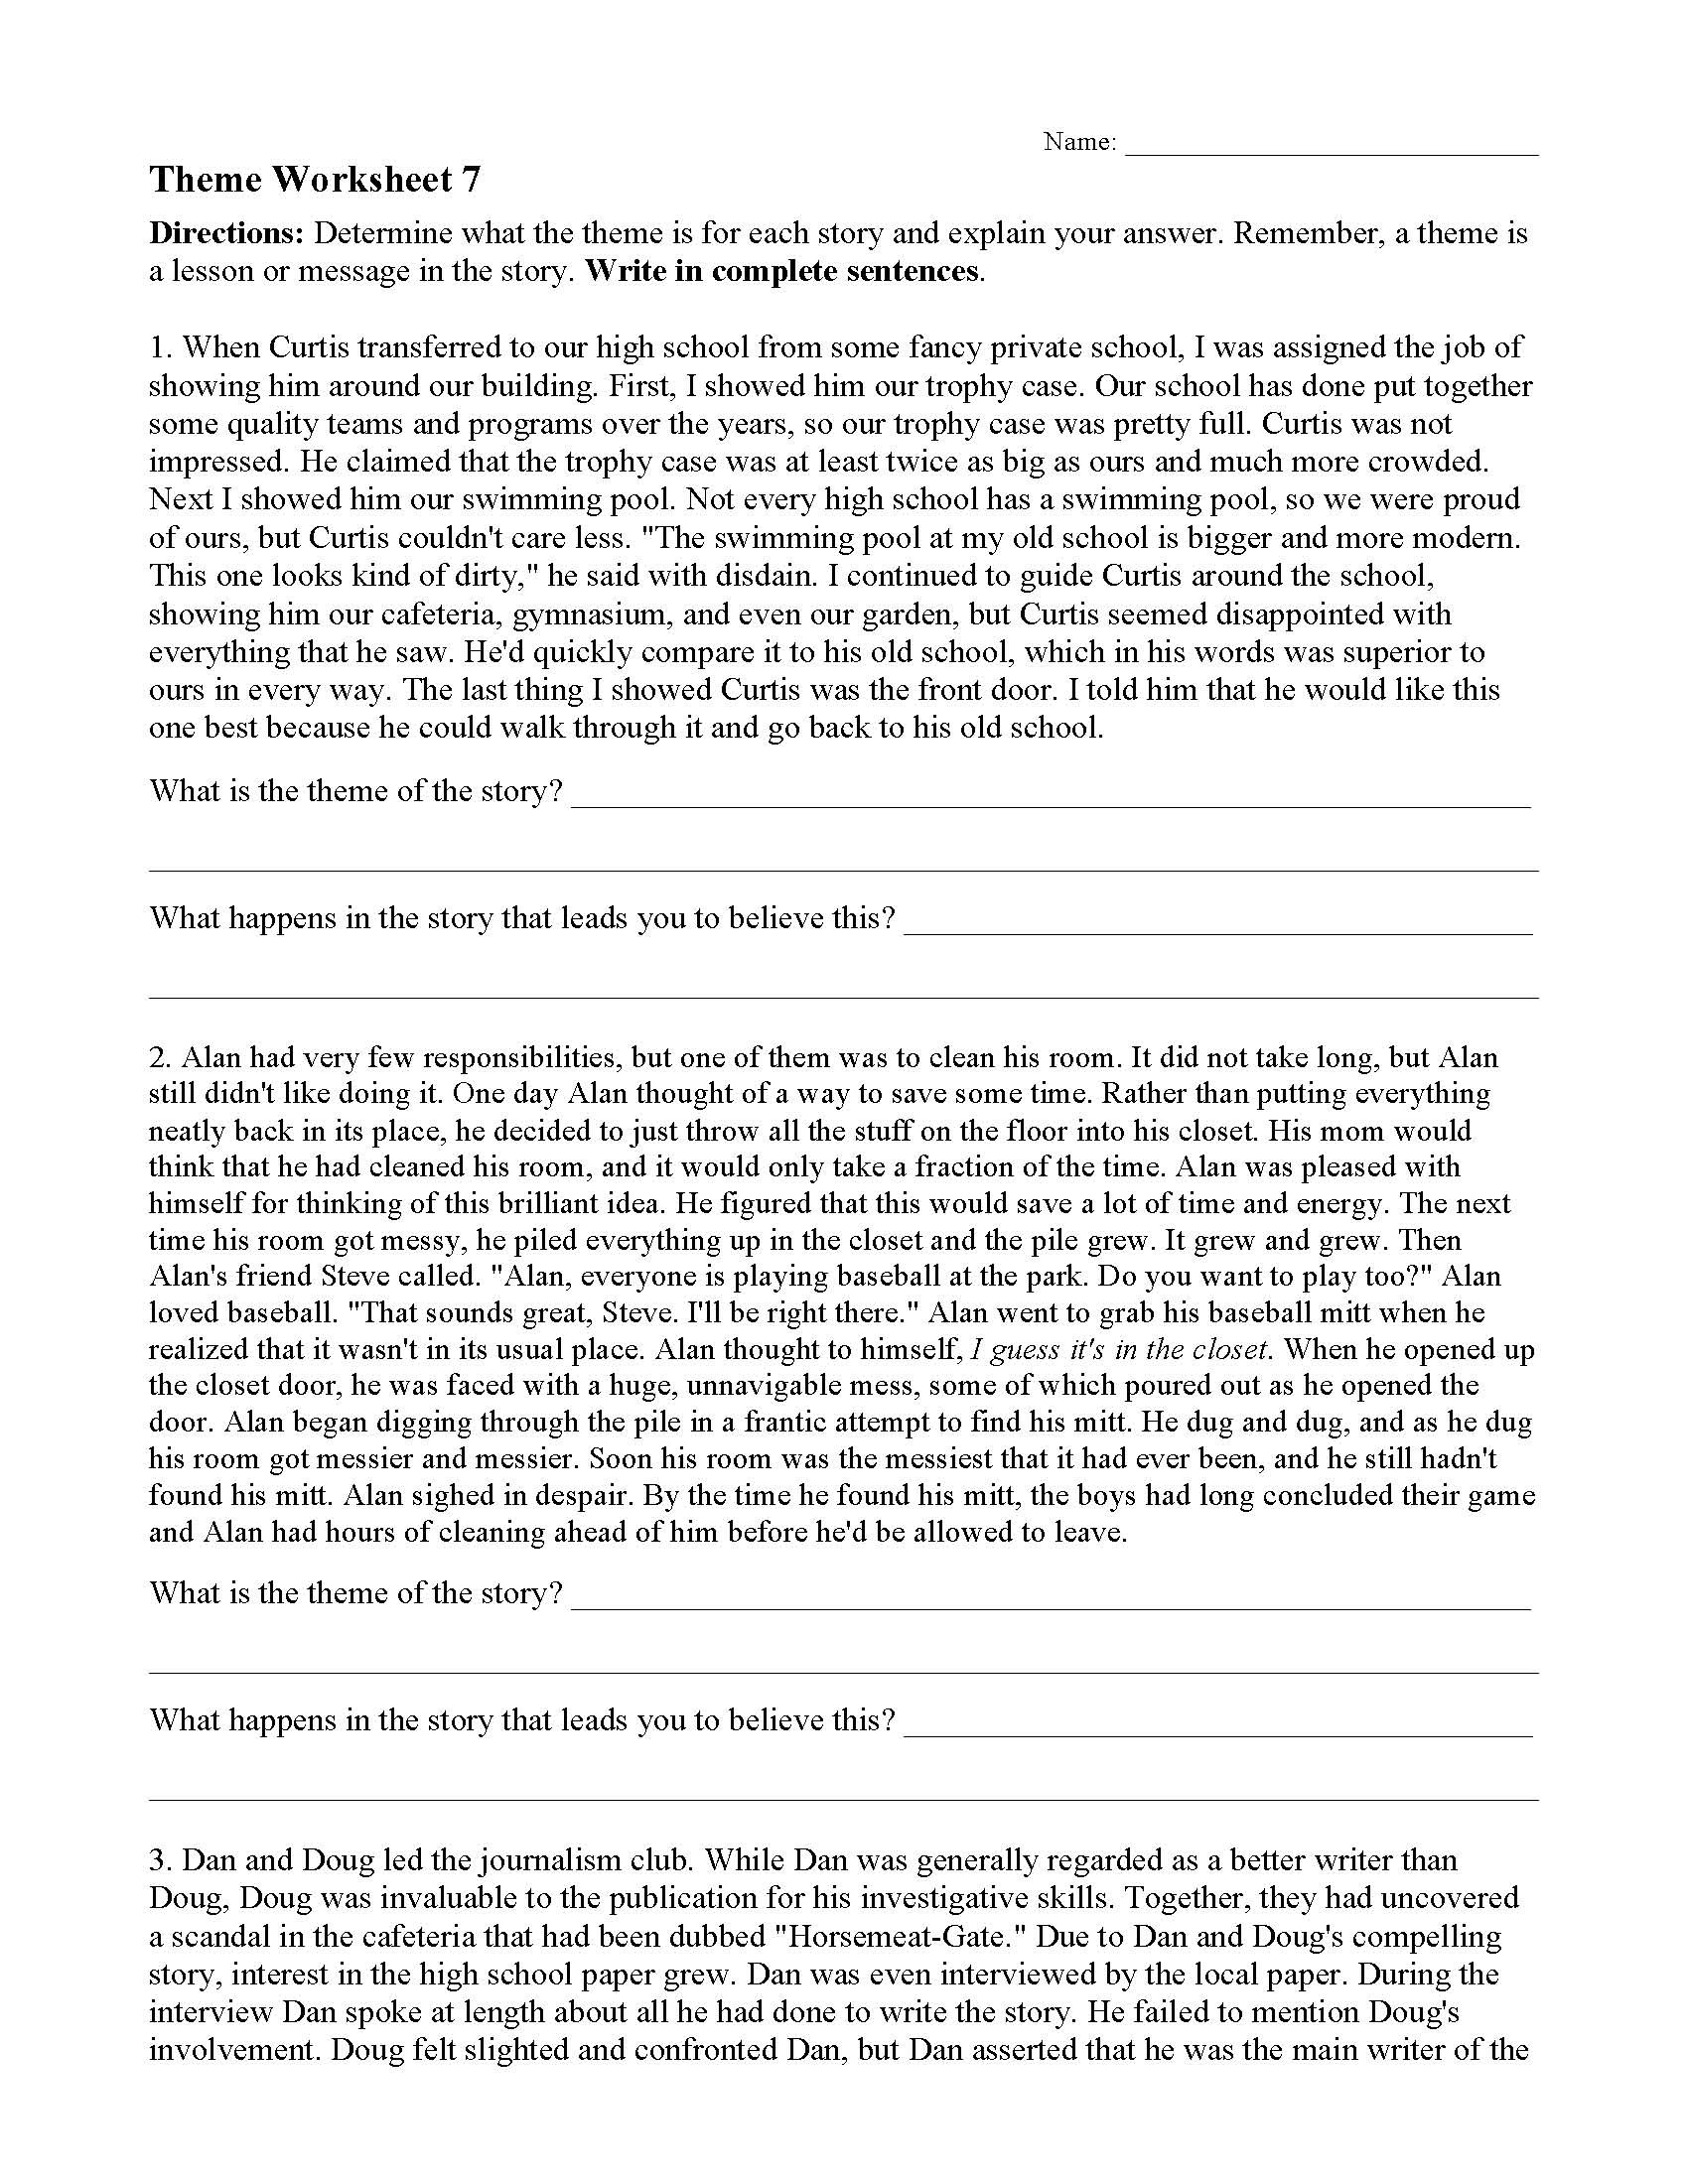 Allusion Worksheets High School theme or Author S Message Worksheets